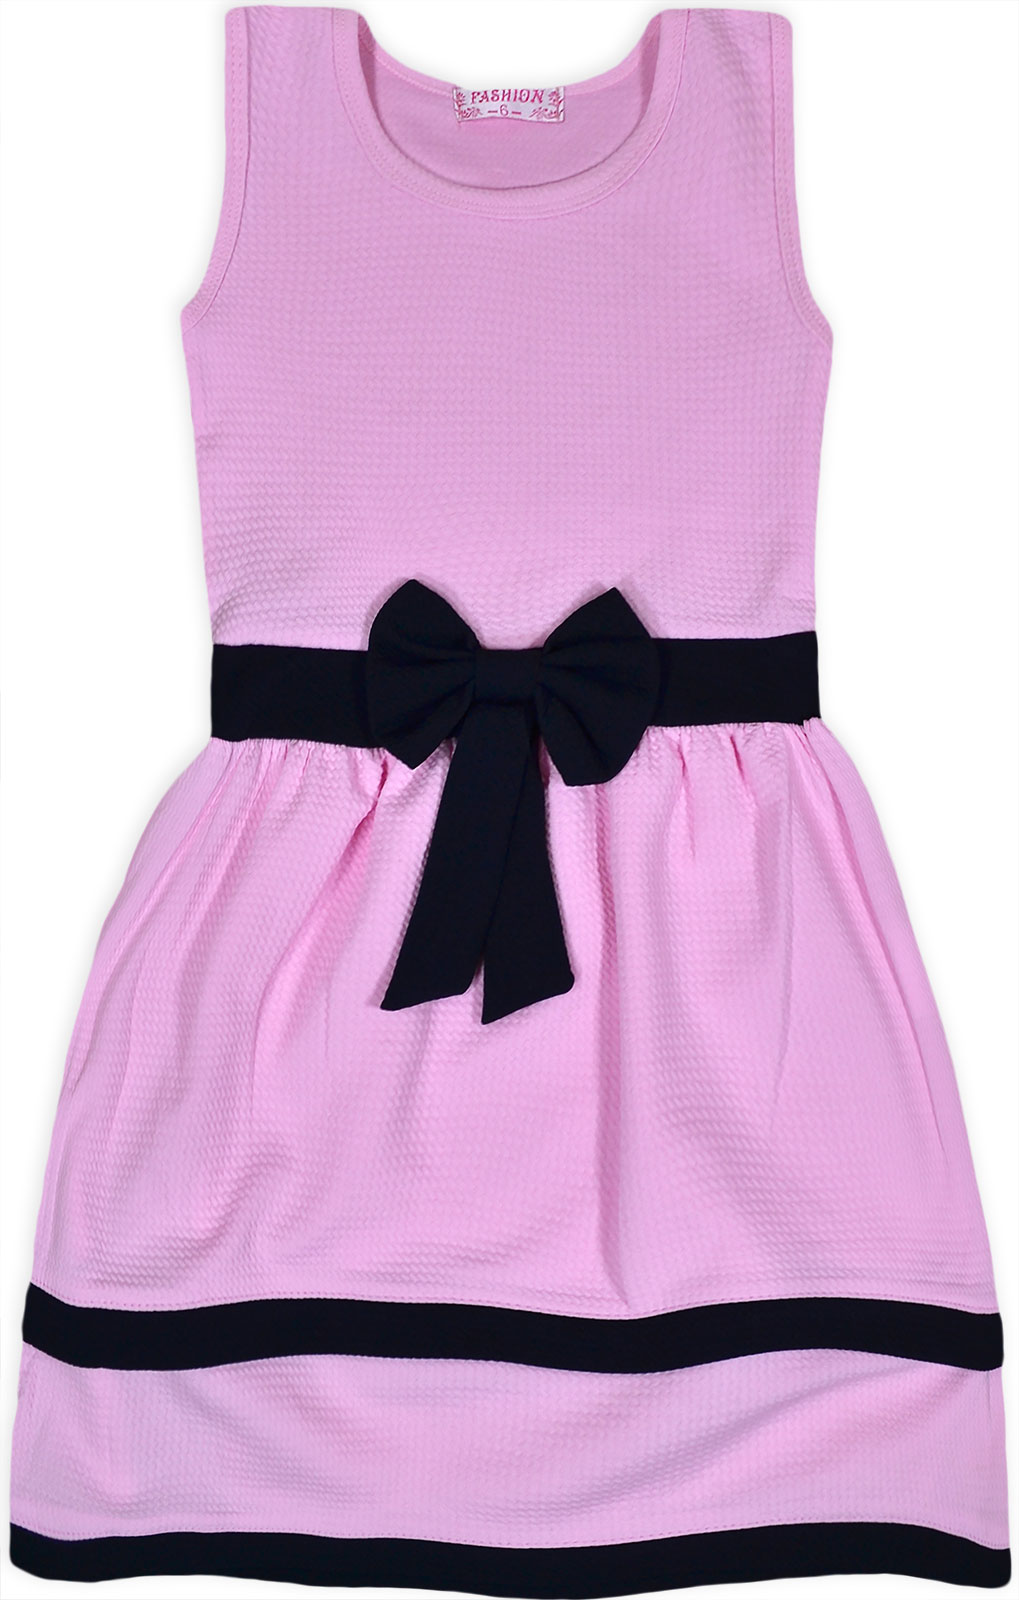 Girls Party Dress New Kids Sleeveless Dresses Summer Outfit Waffle ...